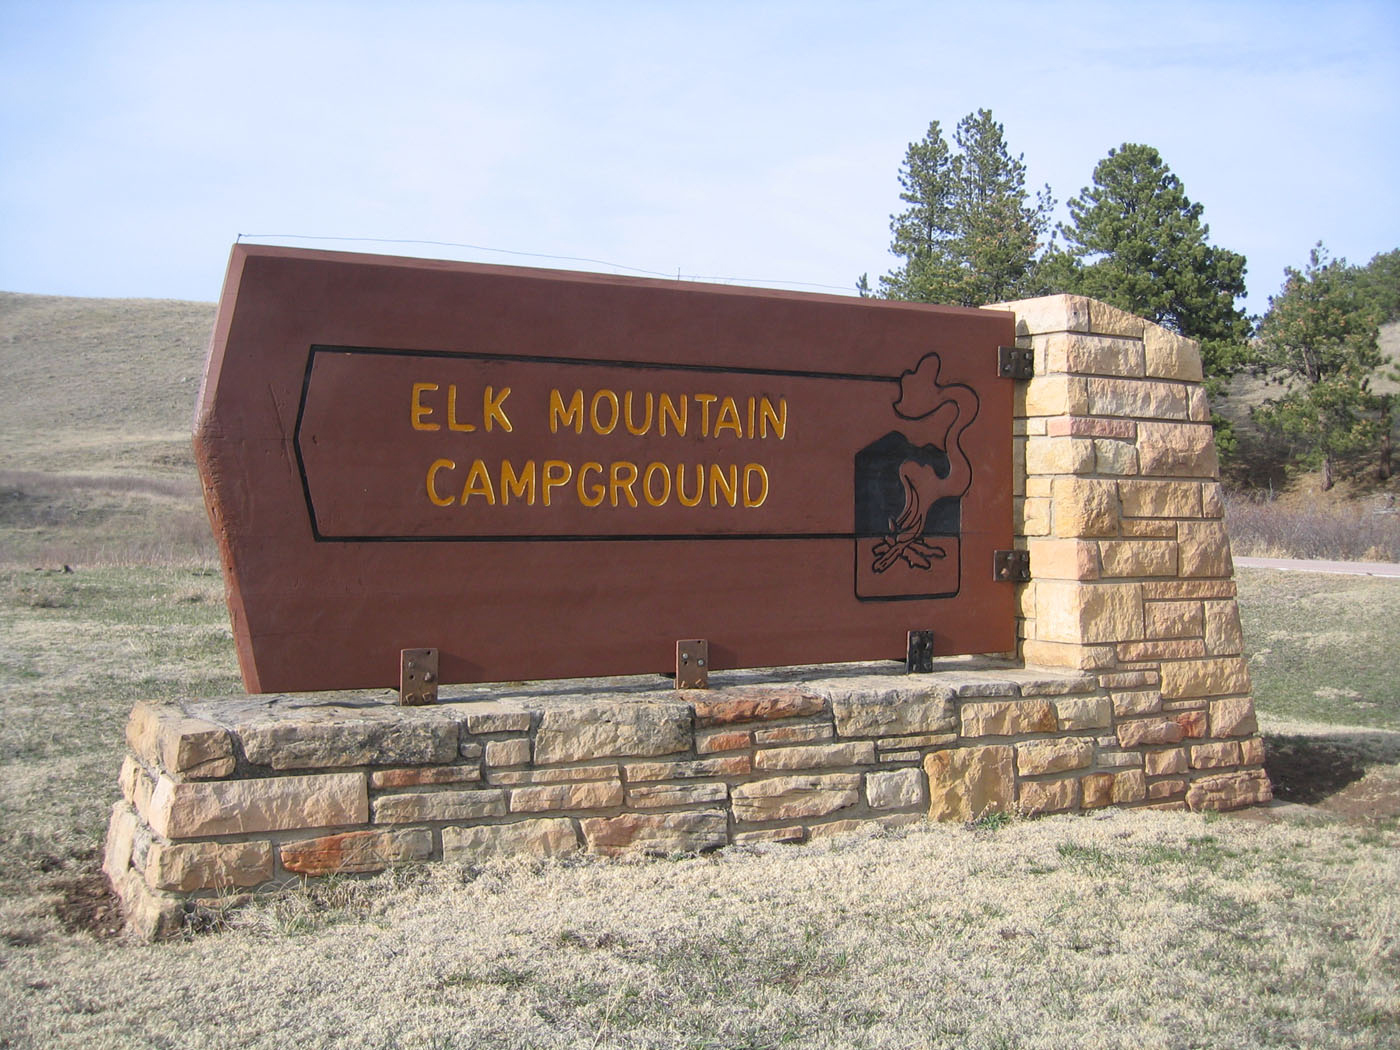 Elk Mountain Campground sign